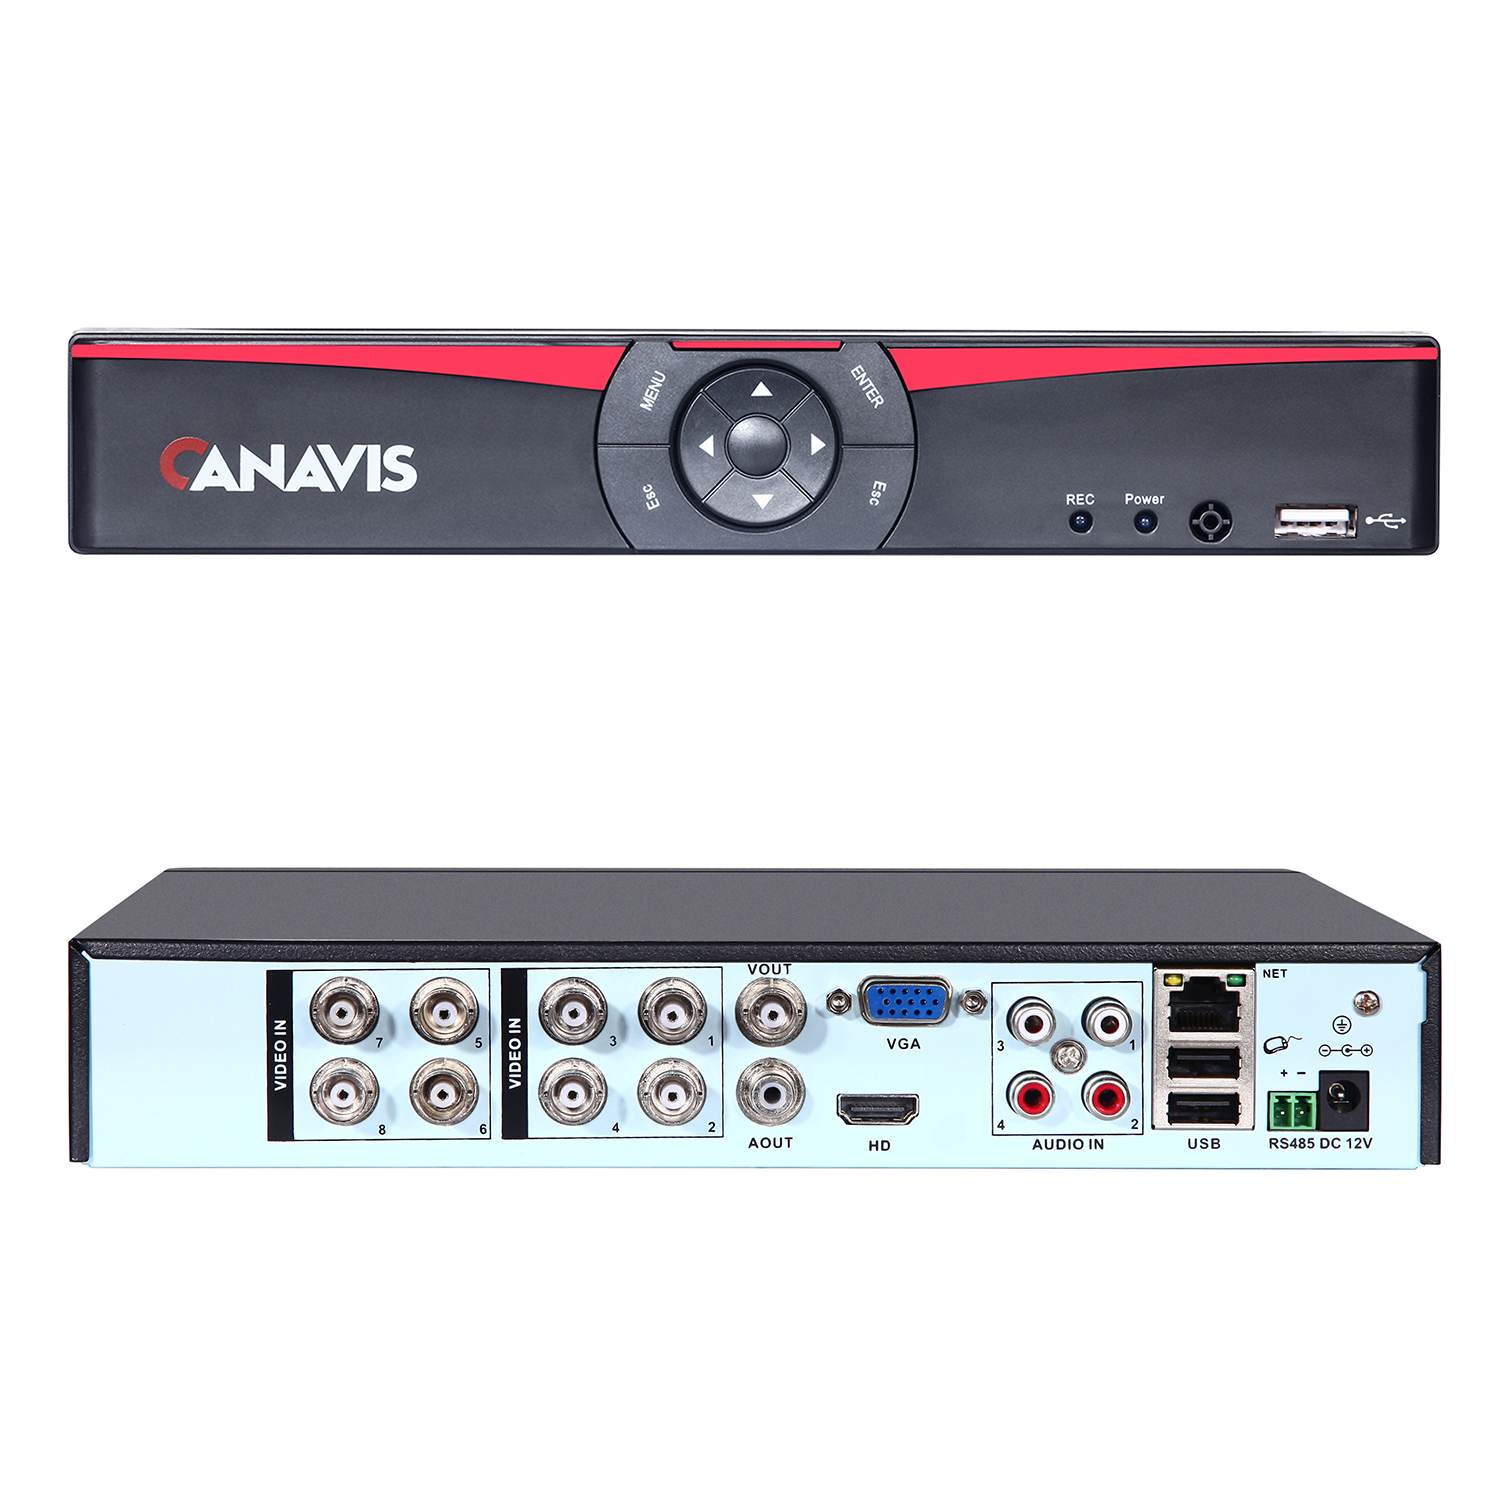 CANAVIS 5.0 Mega Pixel 8 channel digital video recorder